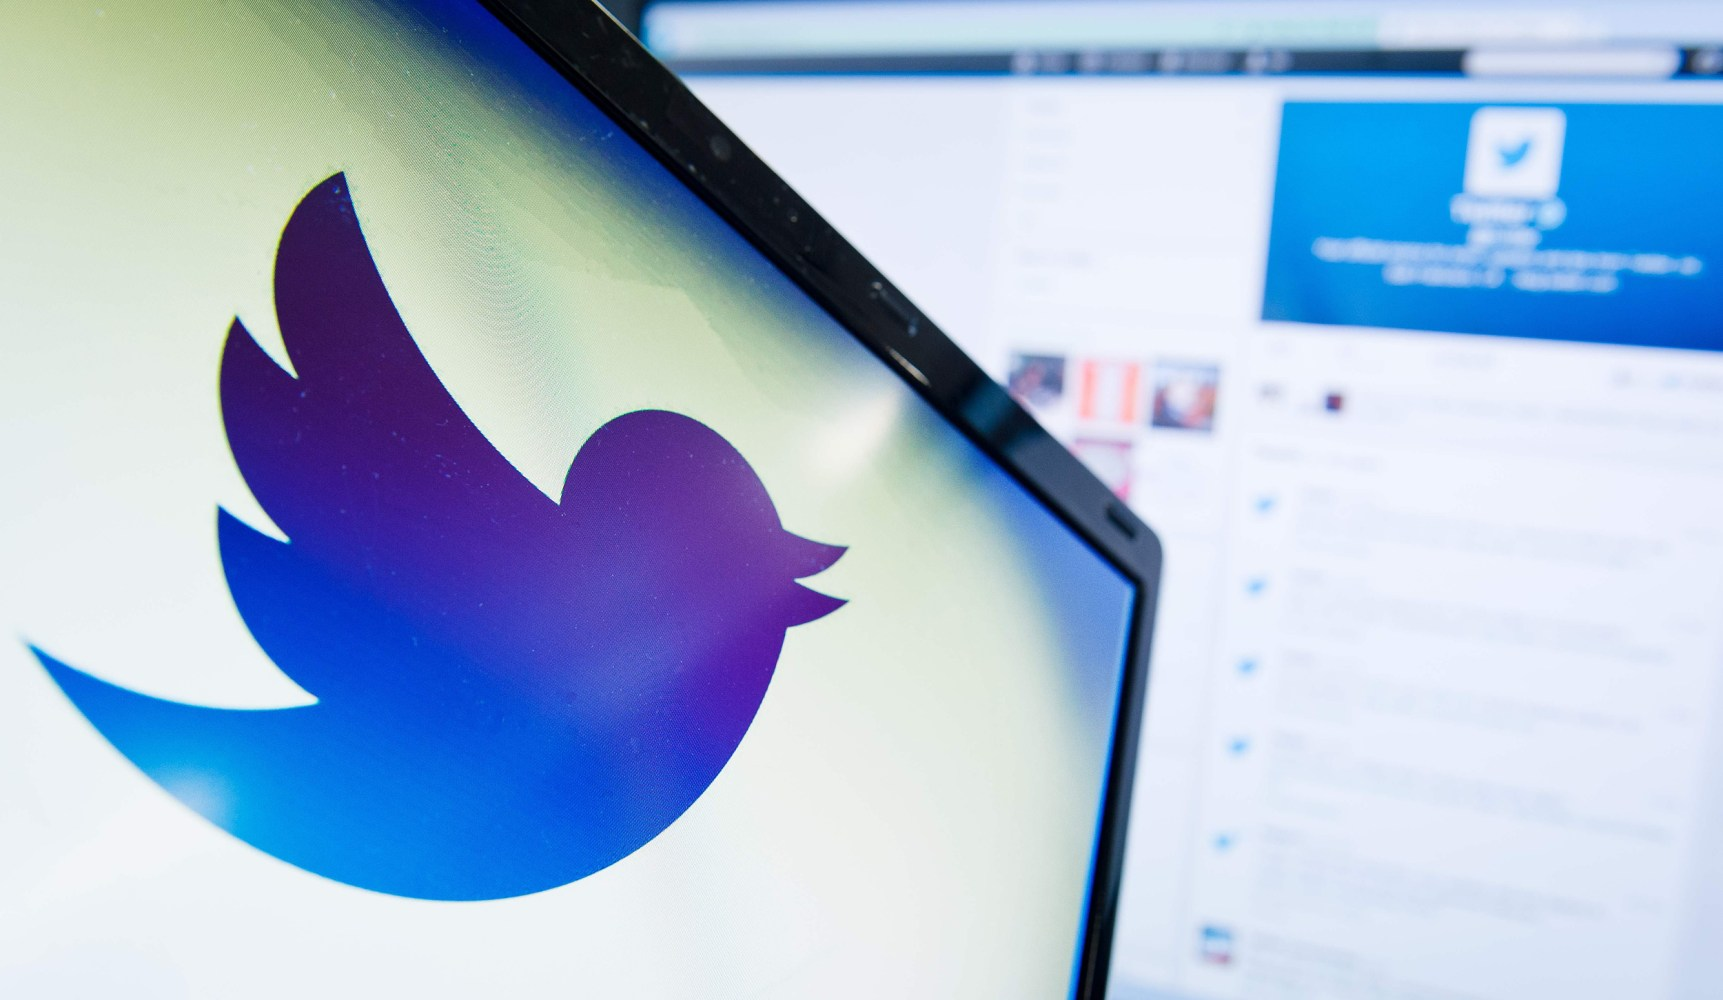 Twitter plans to add purple checks to all political ads